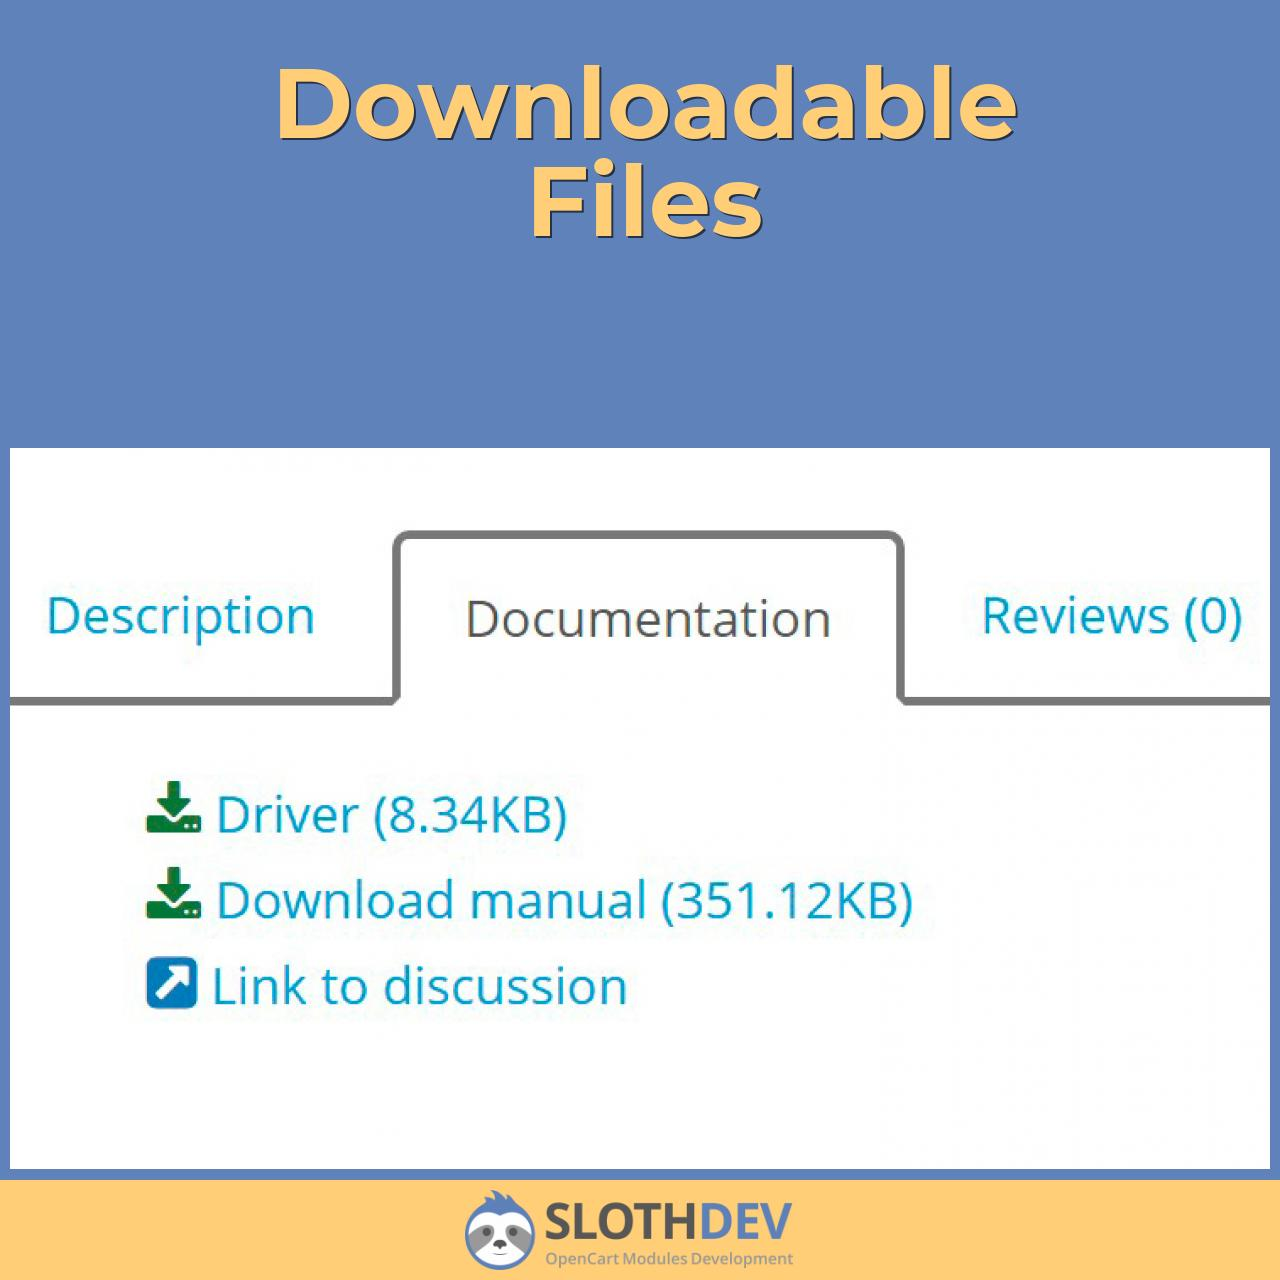 Downloadable Files